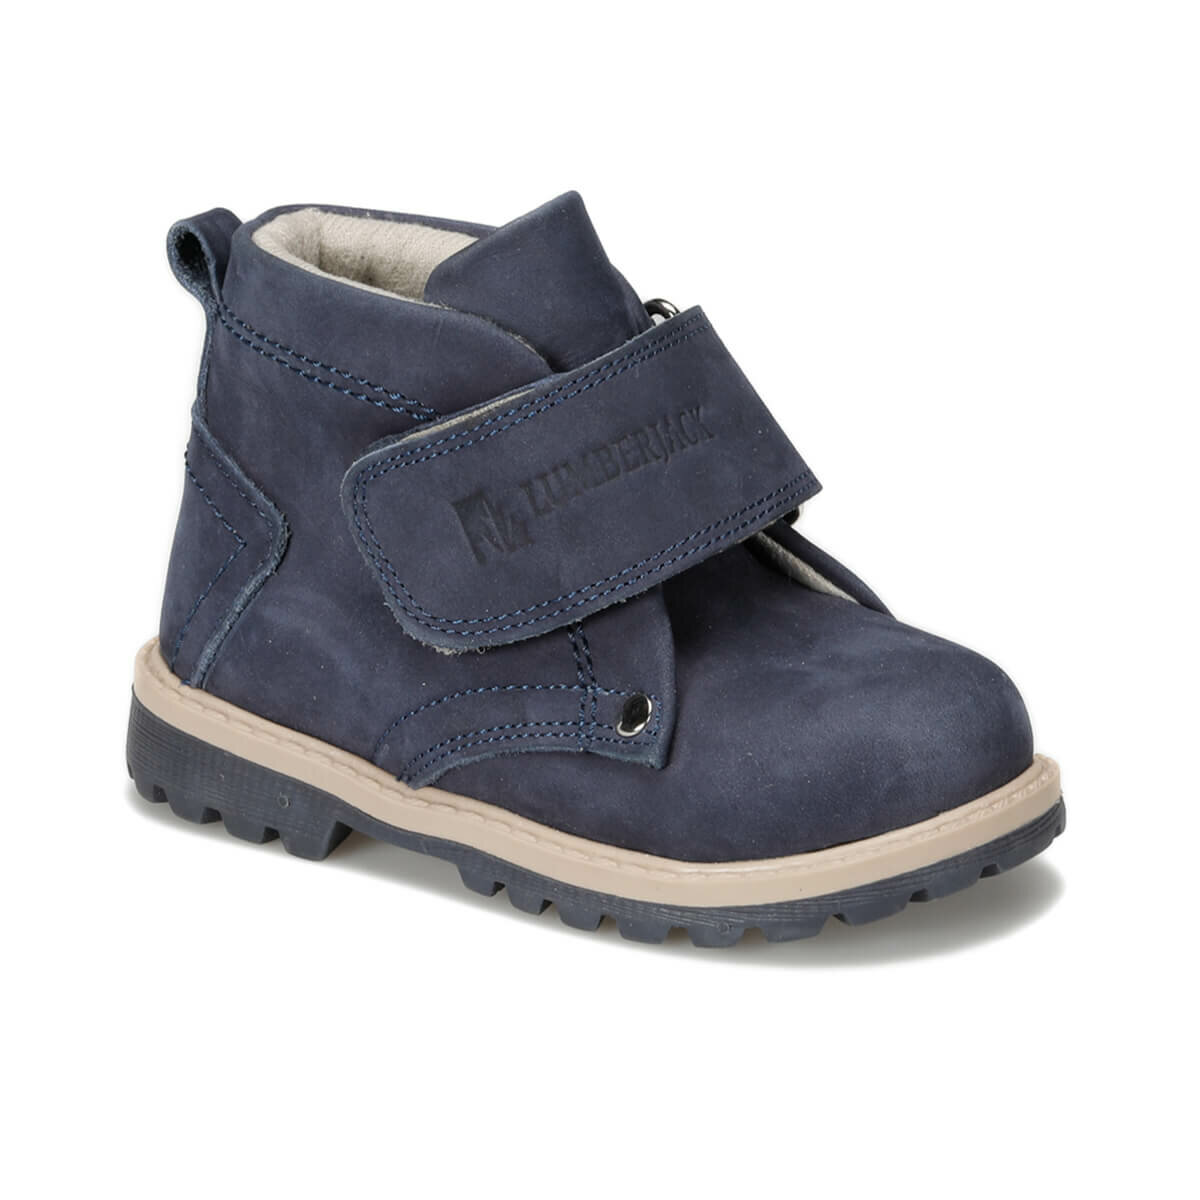 FLO ROCK 9PR Navy Blue Male Child Boots LUMBERJACK